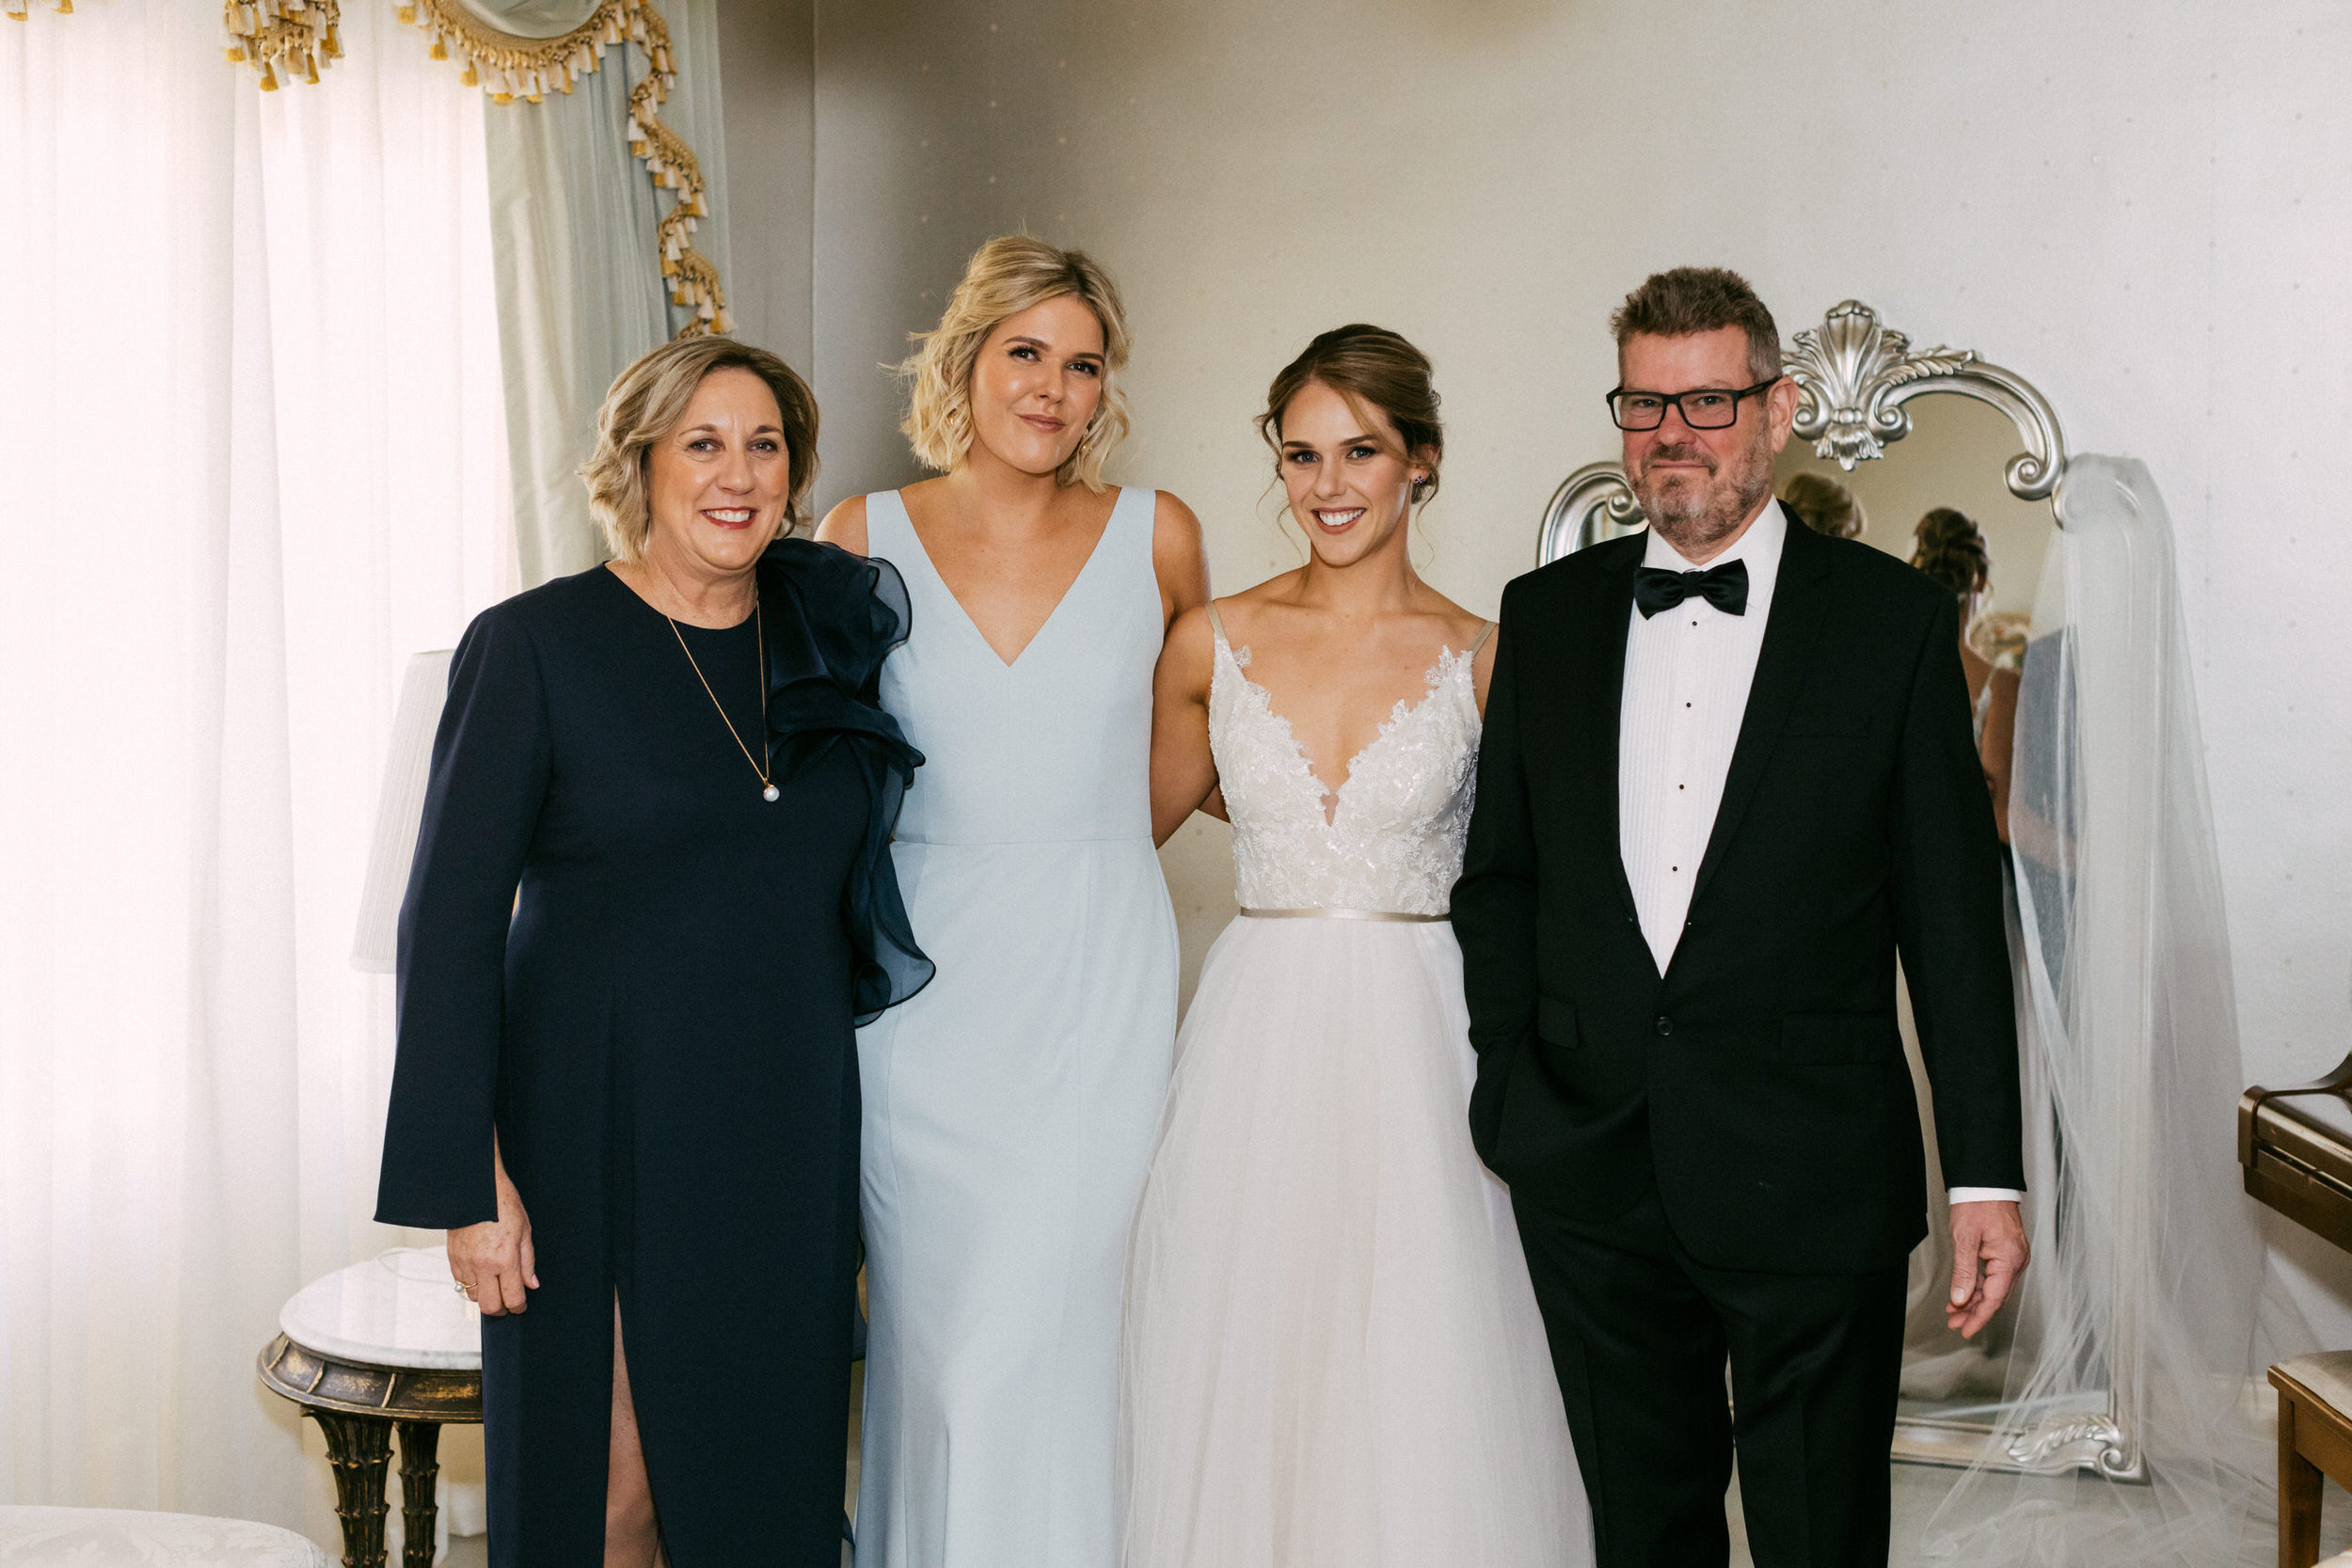 Adelaide Wedding 2019 036.jpg